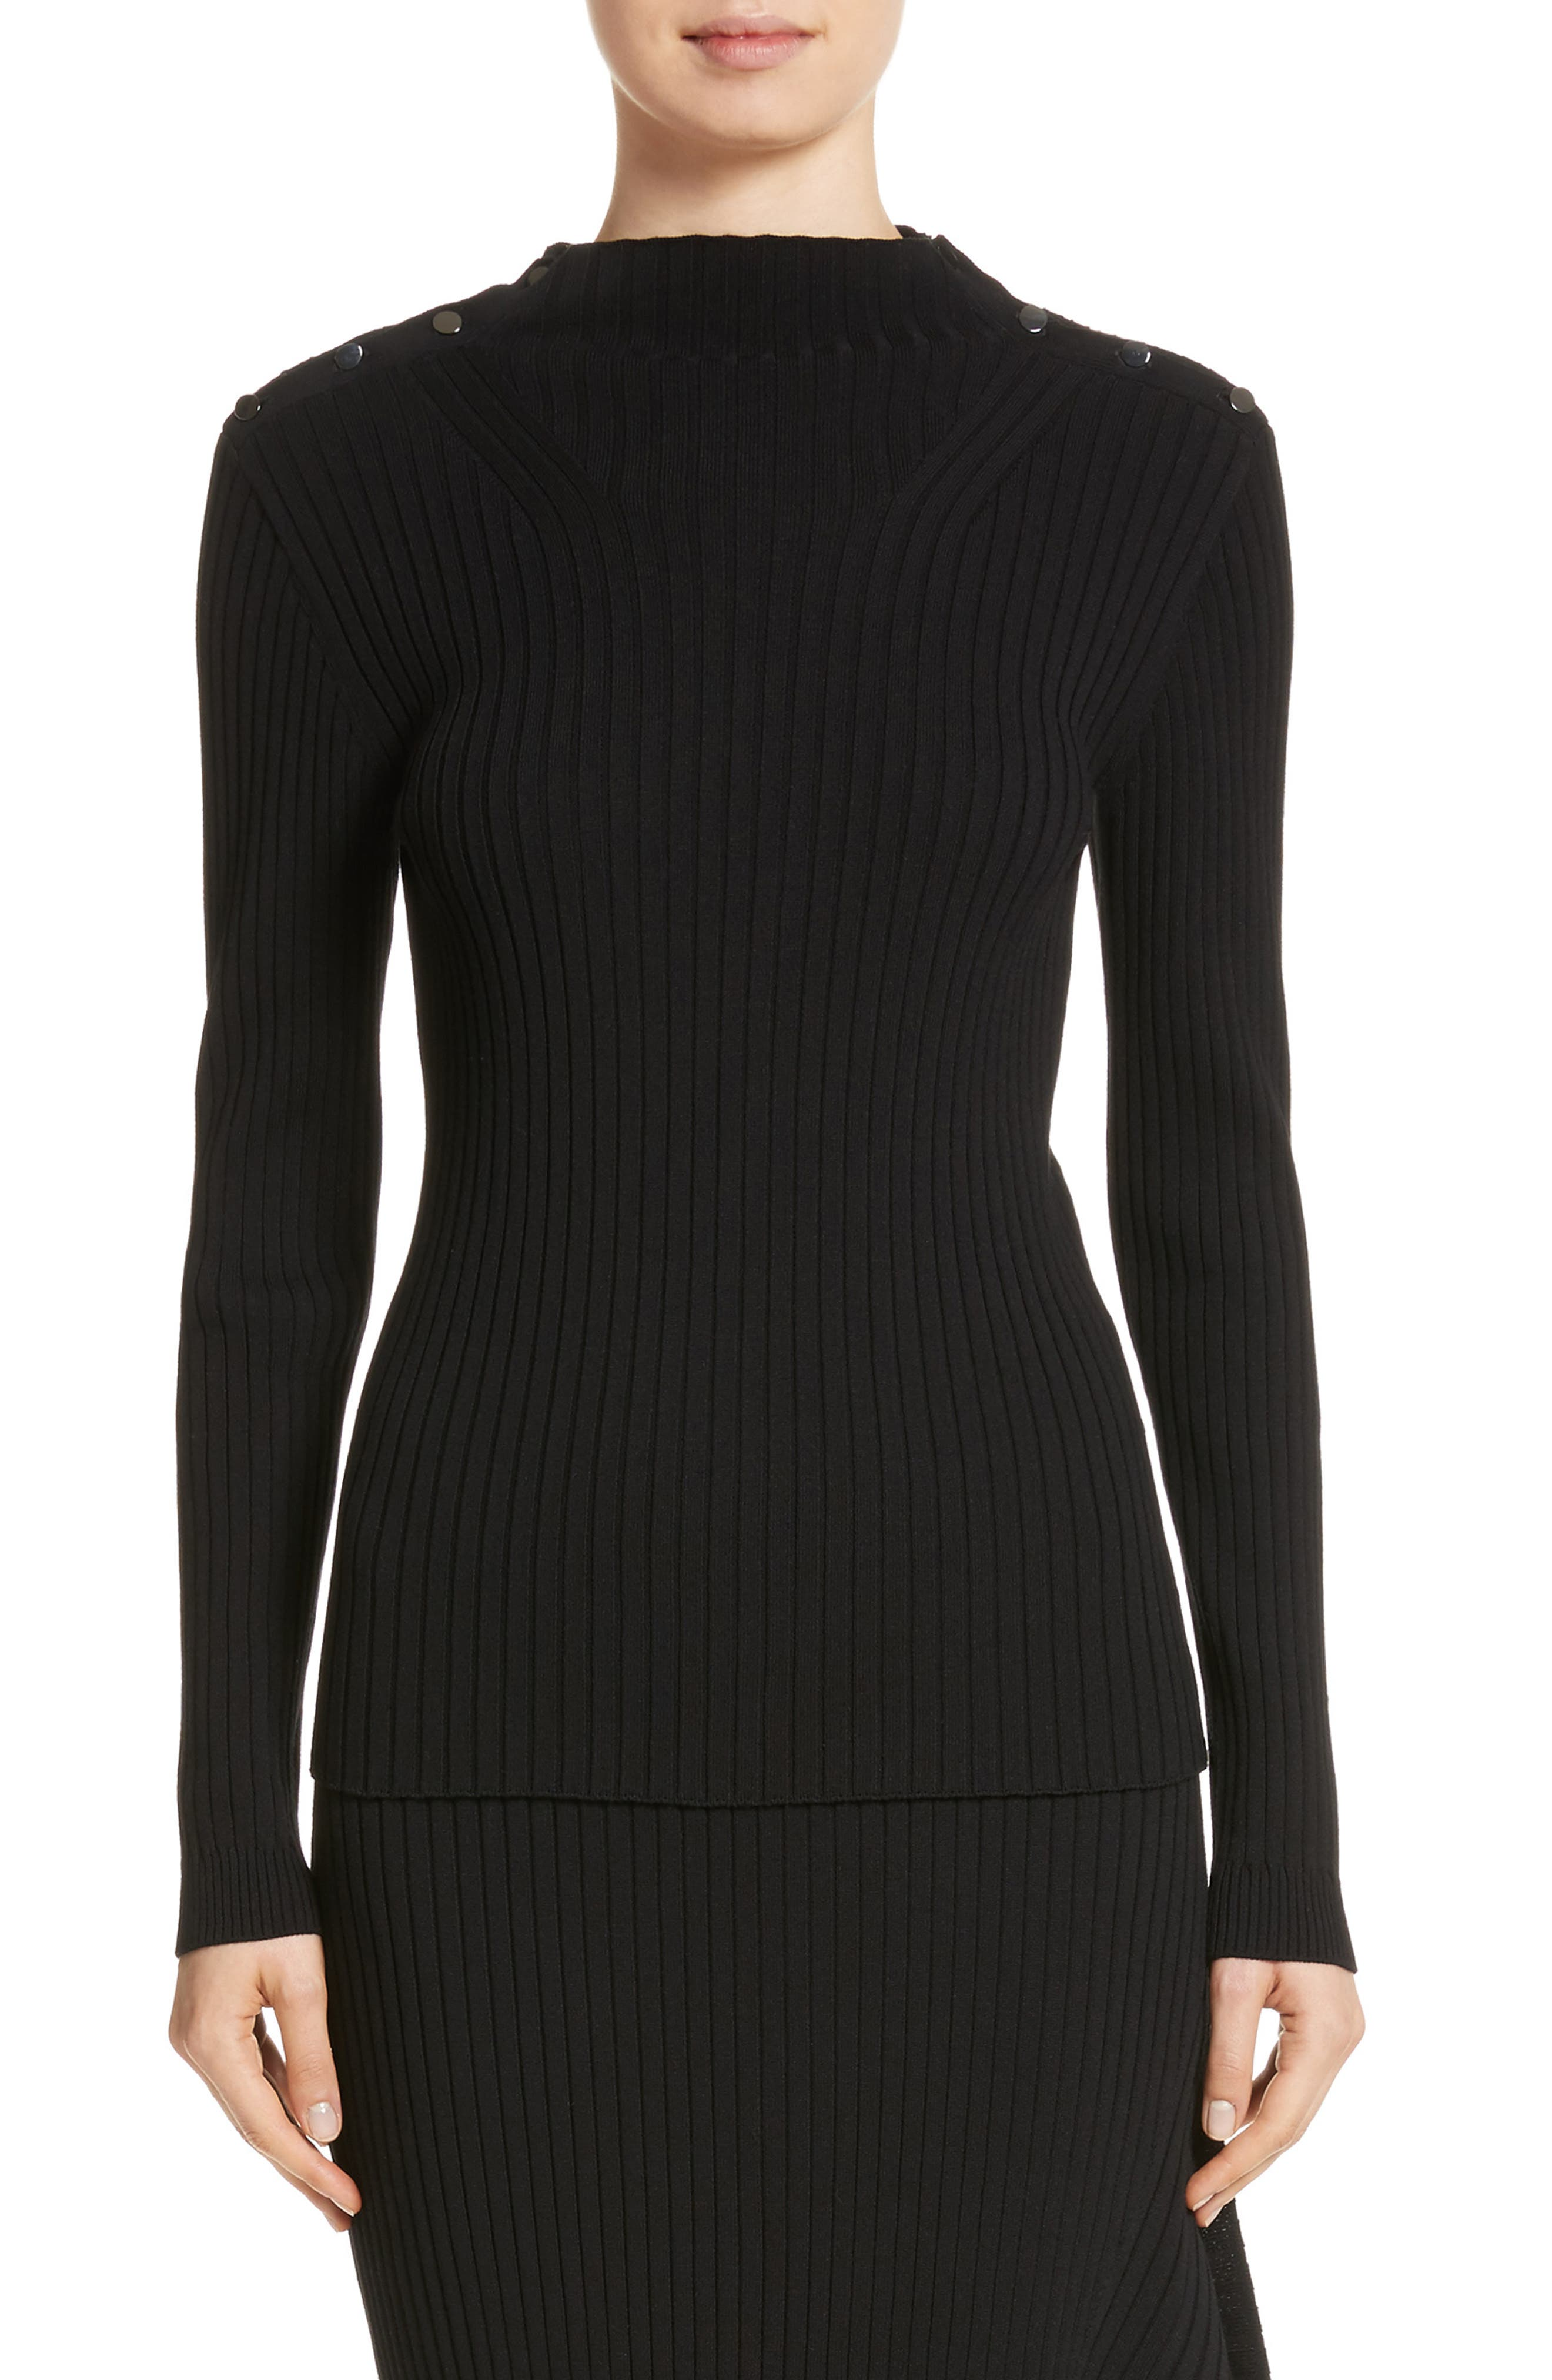 Alternate Image 1 Selected - St. John Collection Flat Rib Knit Mock Neck Sweater